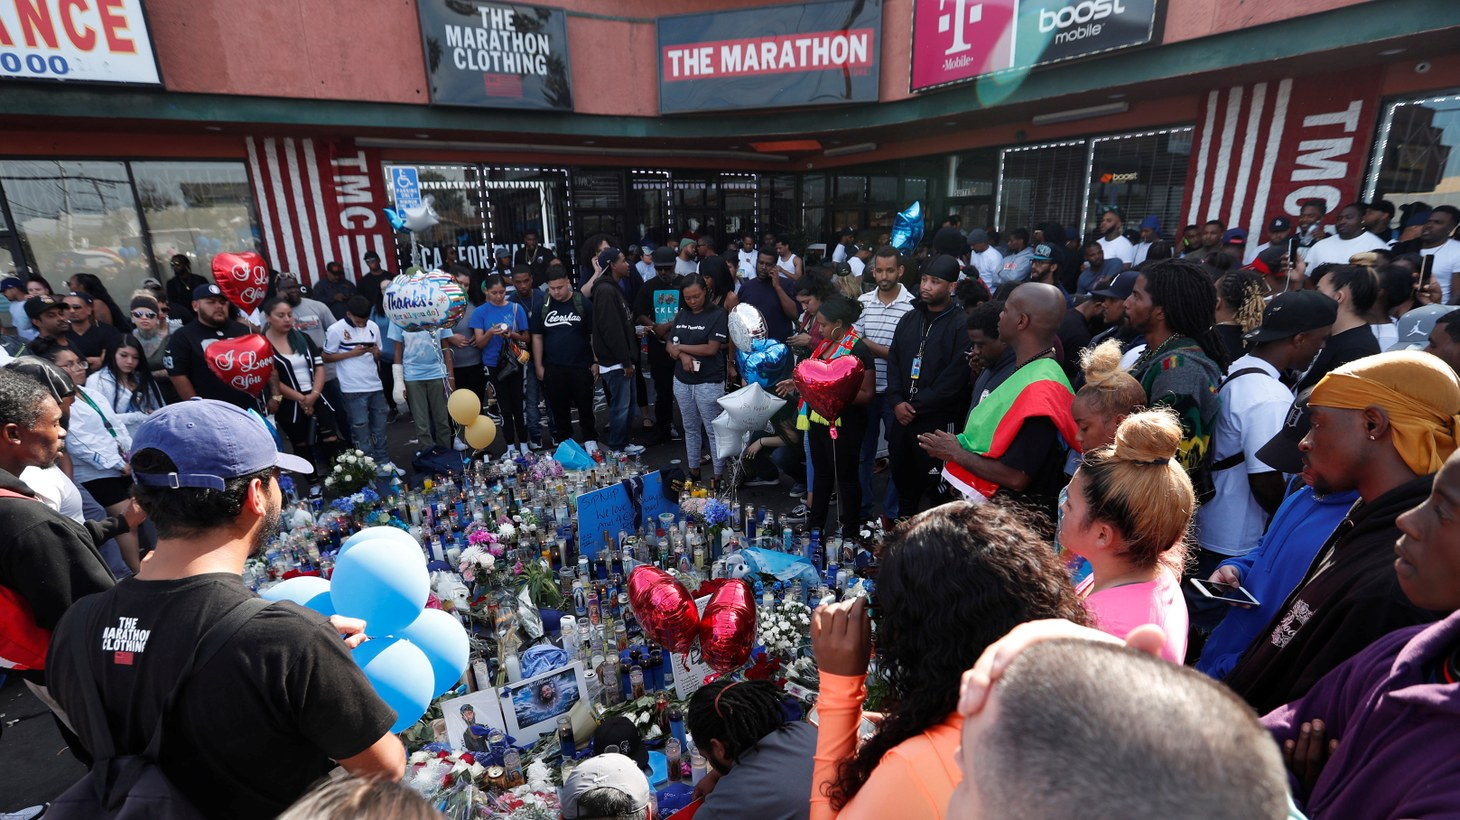 People gather around Nipsey Hussle's store, The Marathon Clothing, in South Los Angeles to pay their respects.